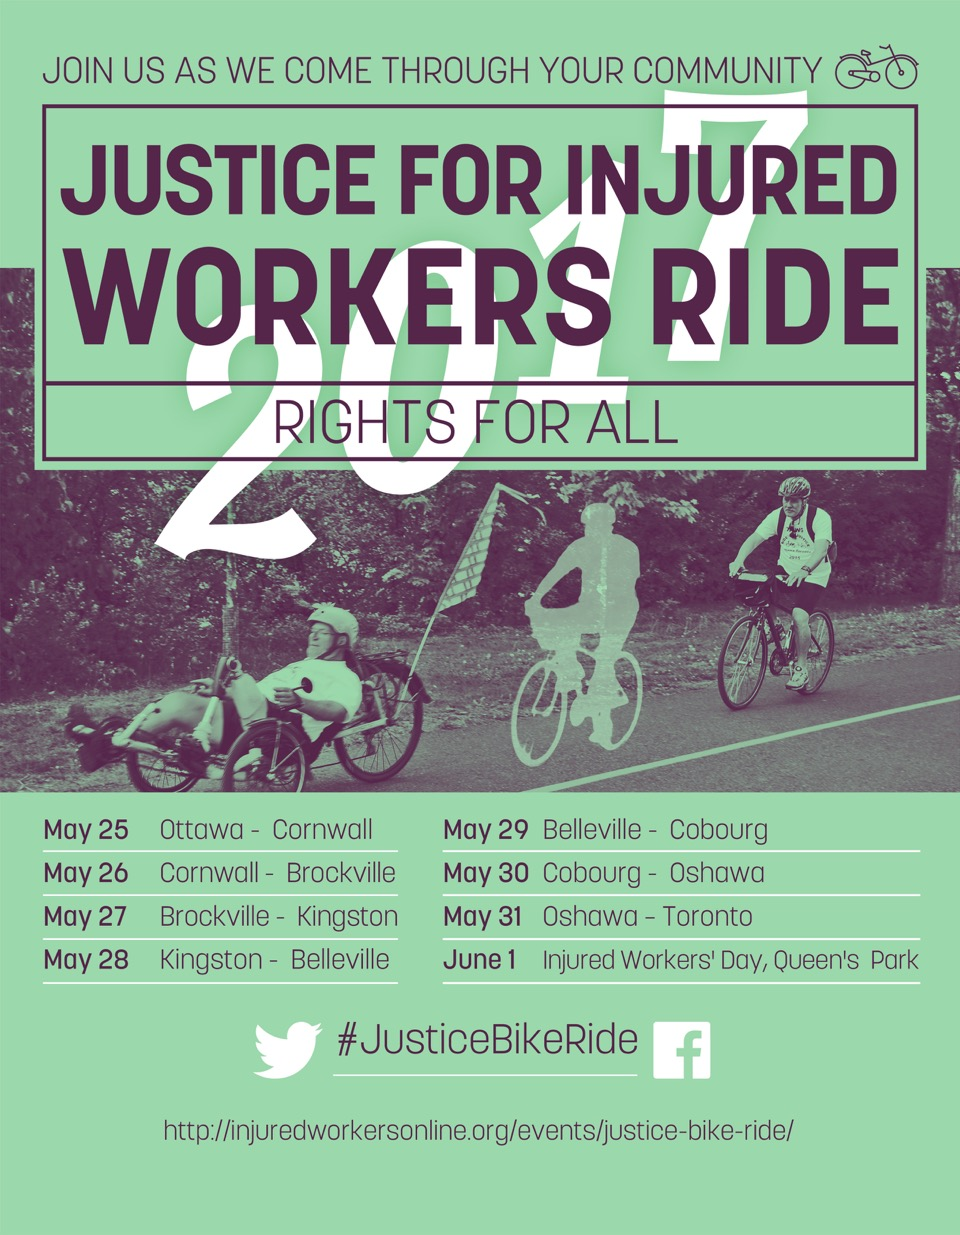 Justice for Injured Workers Bike Ride poster with itinerary